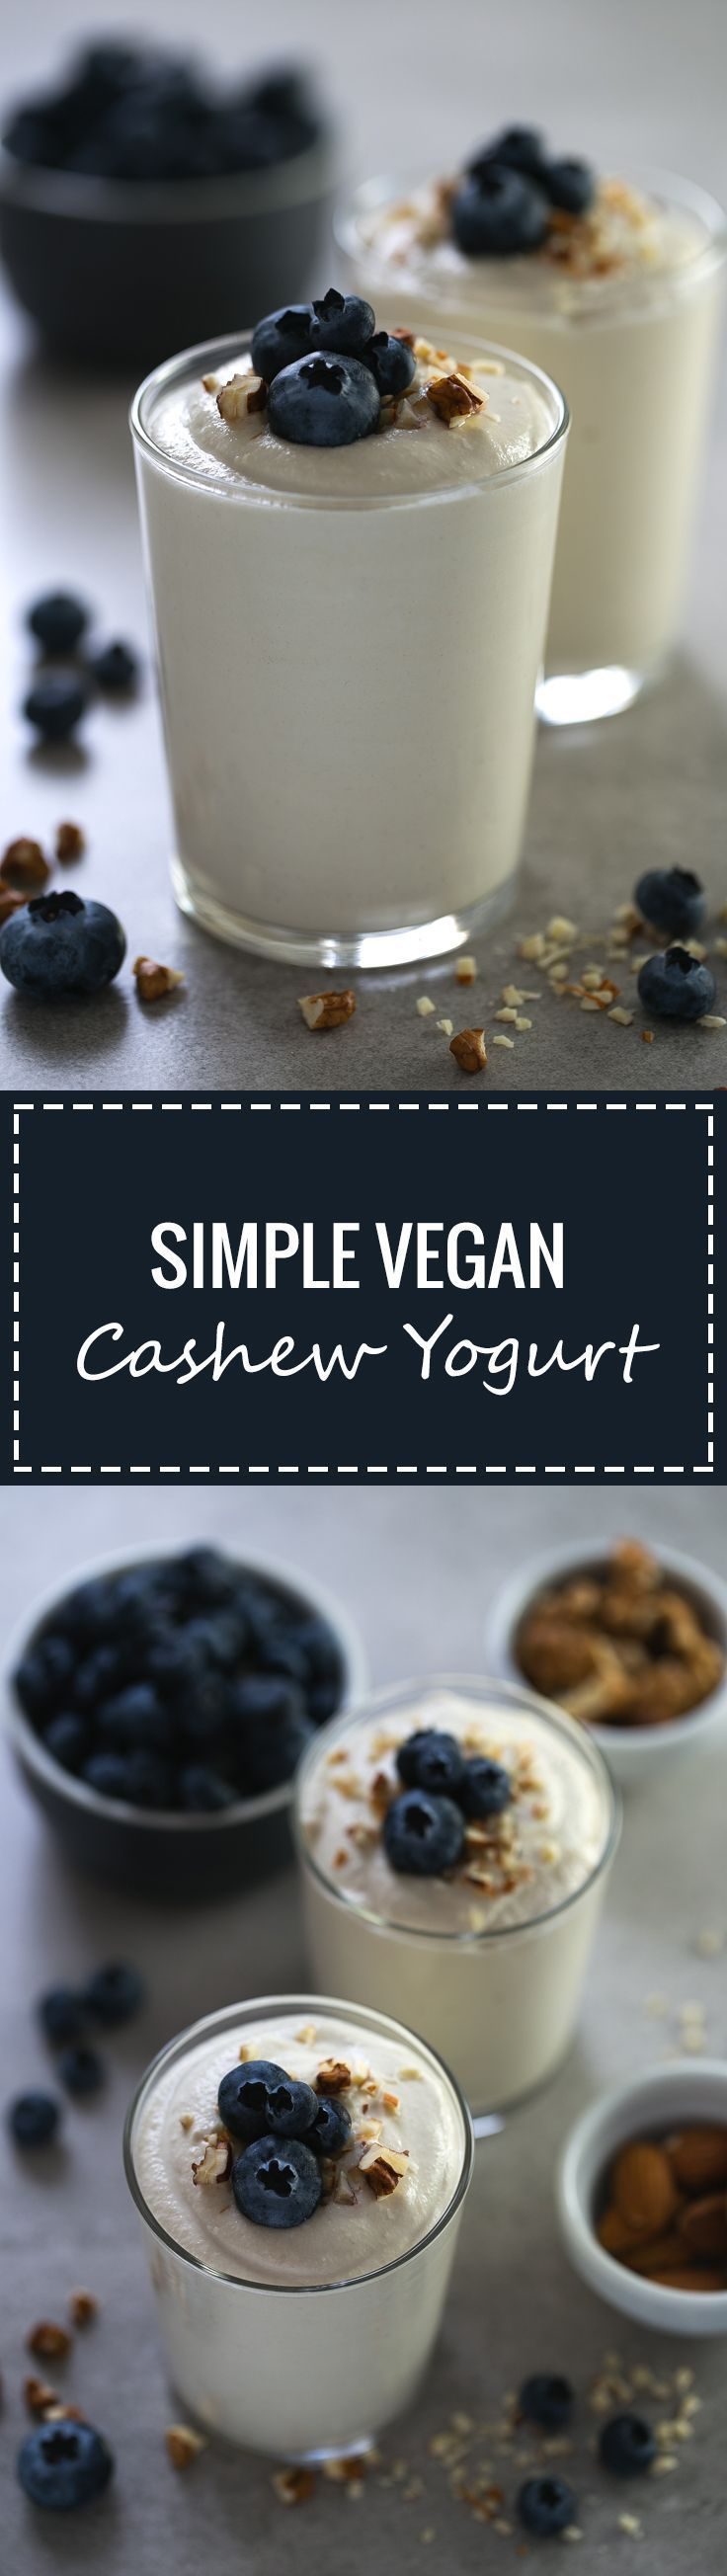 Making non-dairy yogurt at home is so easy, besides, it's healthier and tastes so good! We used unsalted raw cashews to make this delicious vegan yogurt.